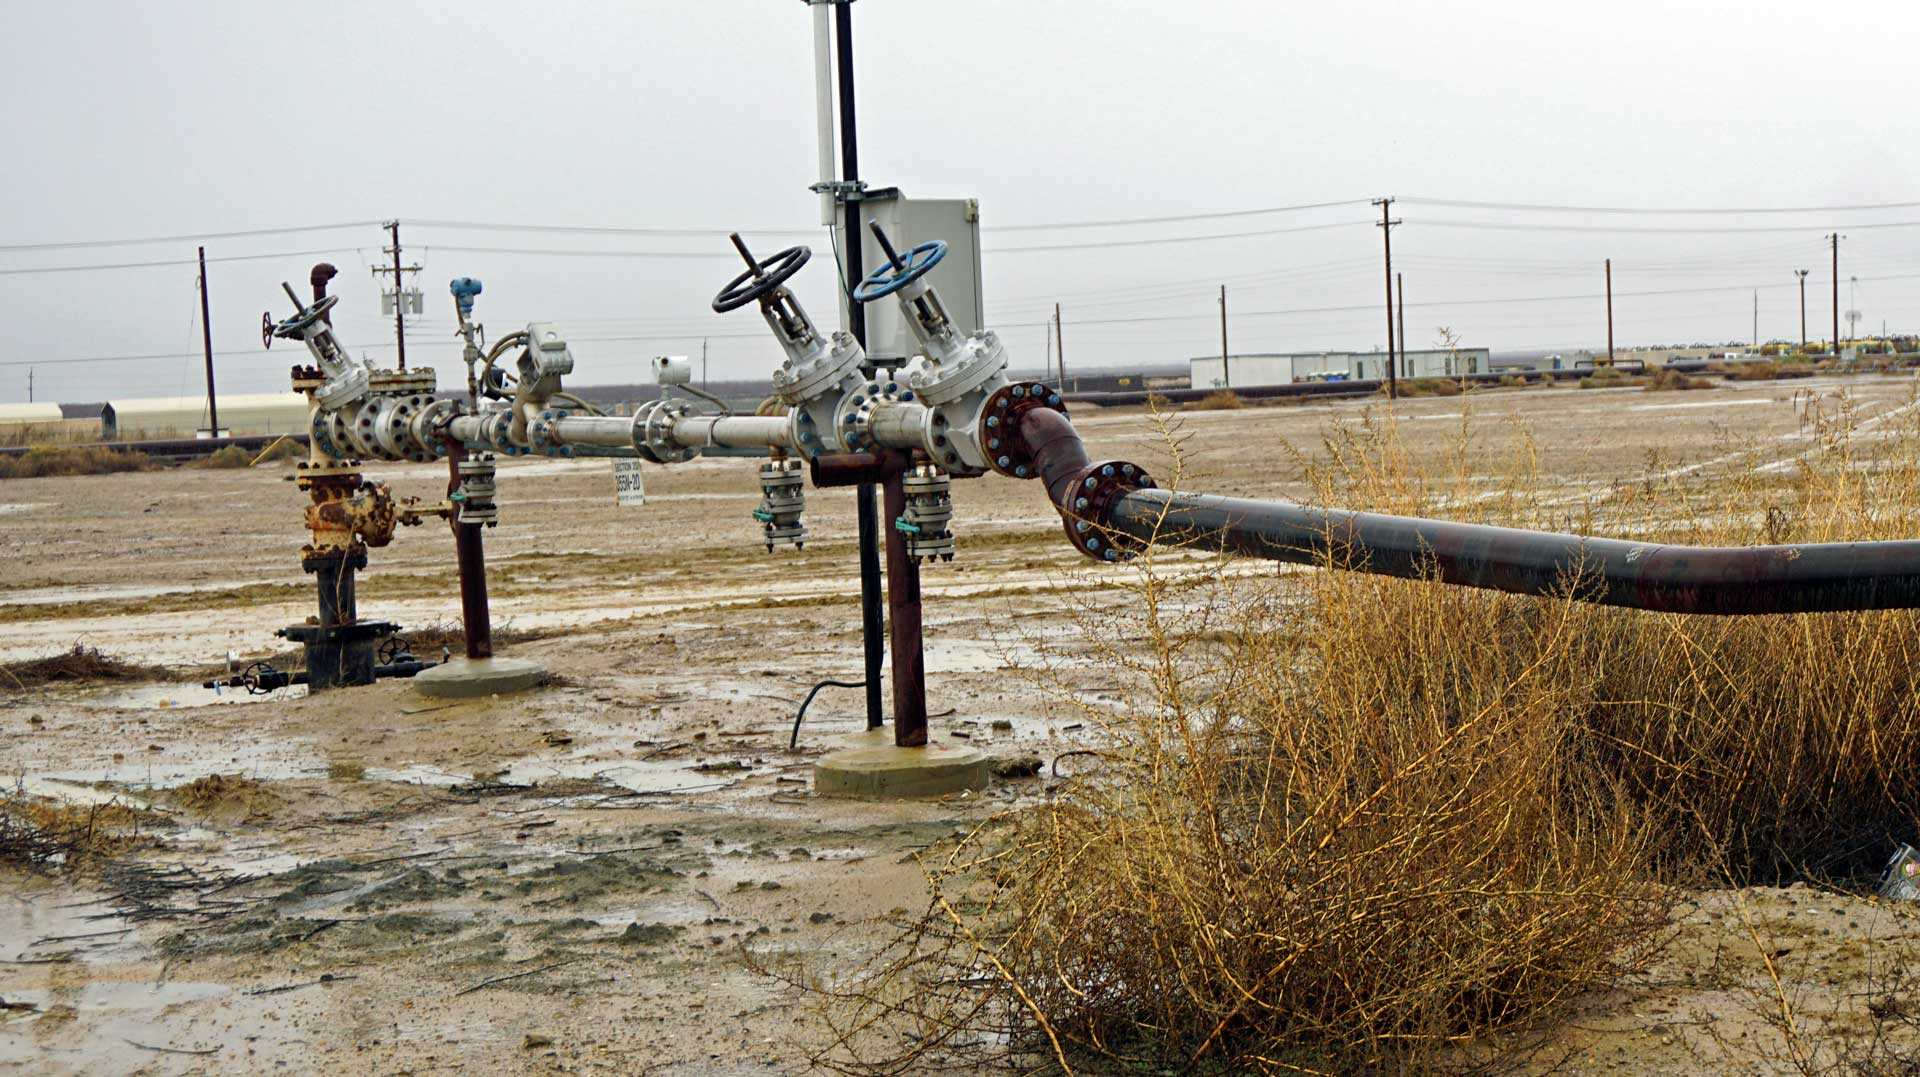 A_wastewater_injection_well_in_San_Joaquin_County._(Lauren_Sommer_KQED).jpg